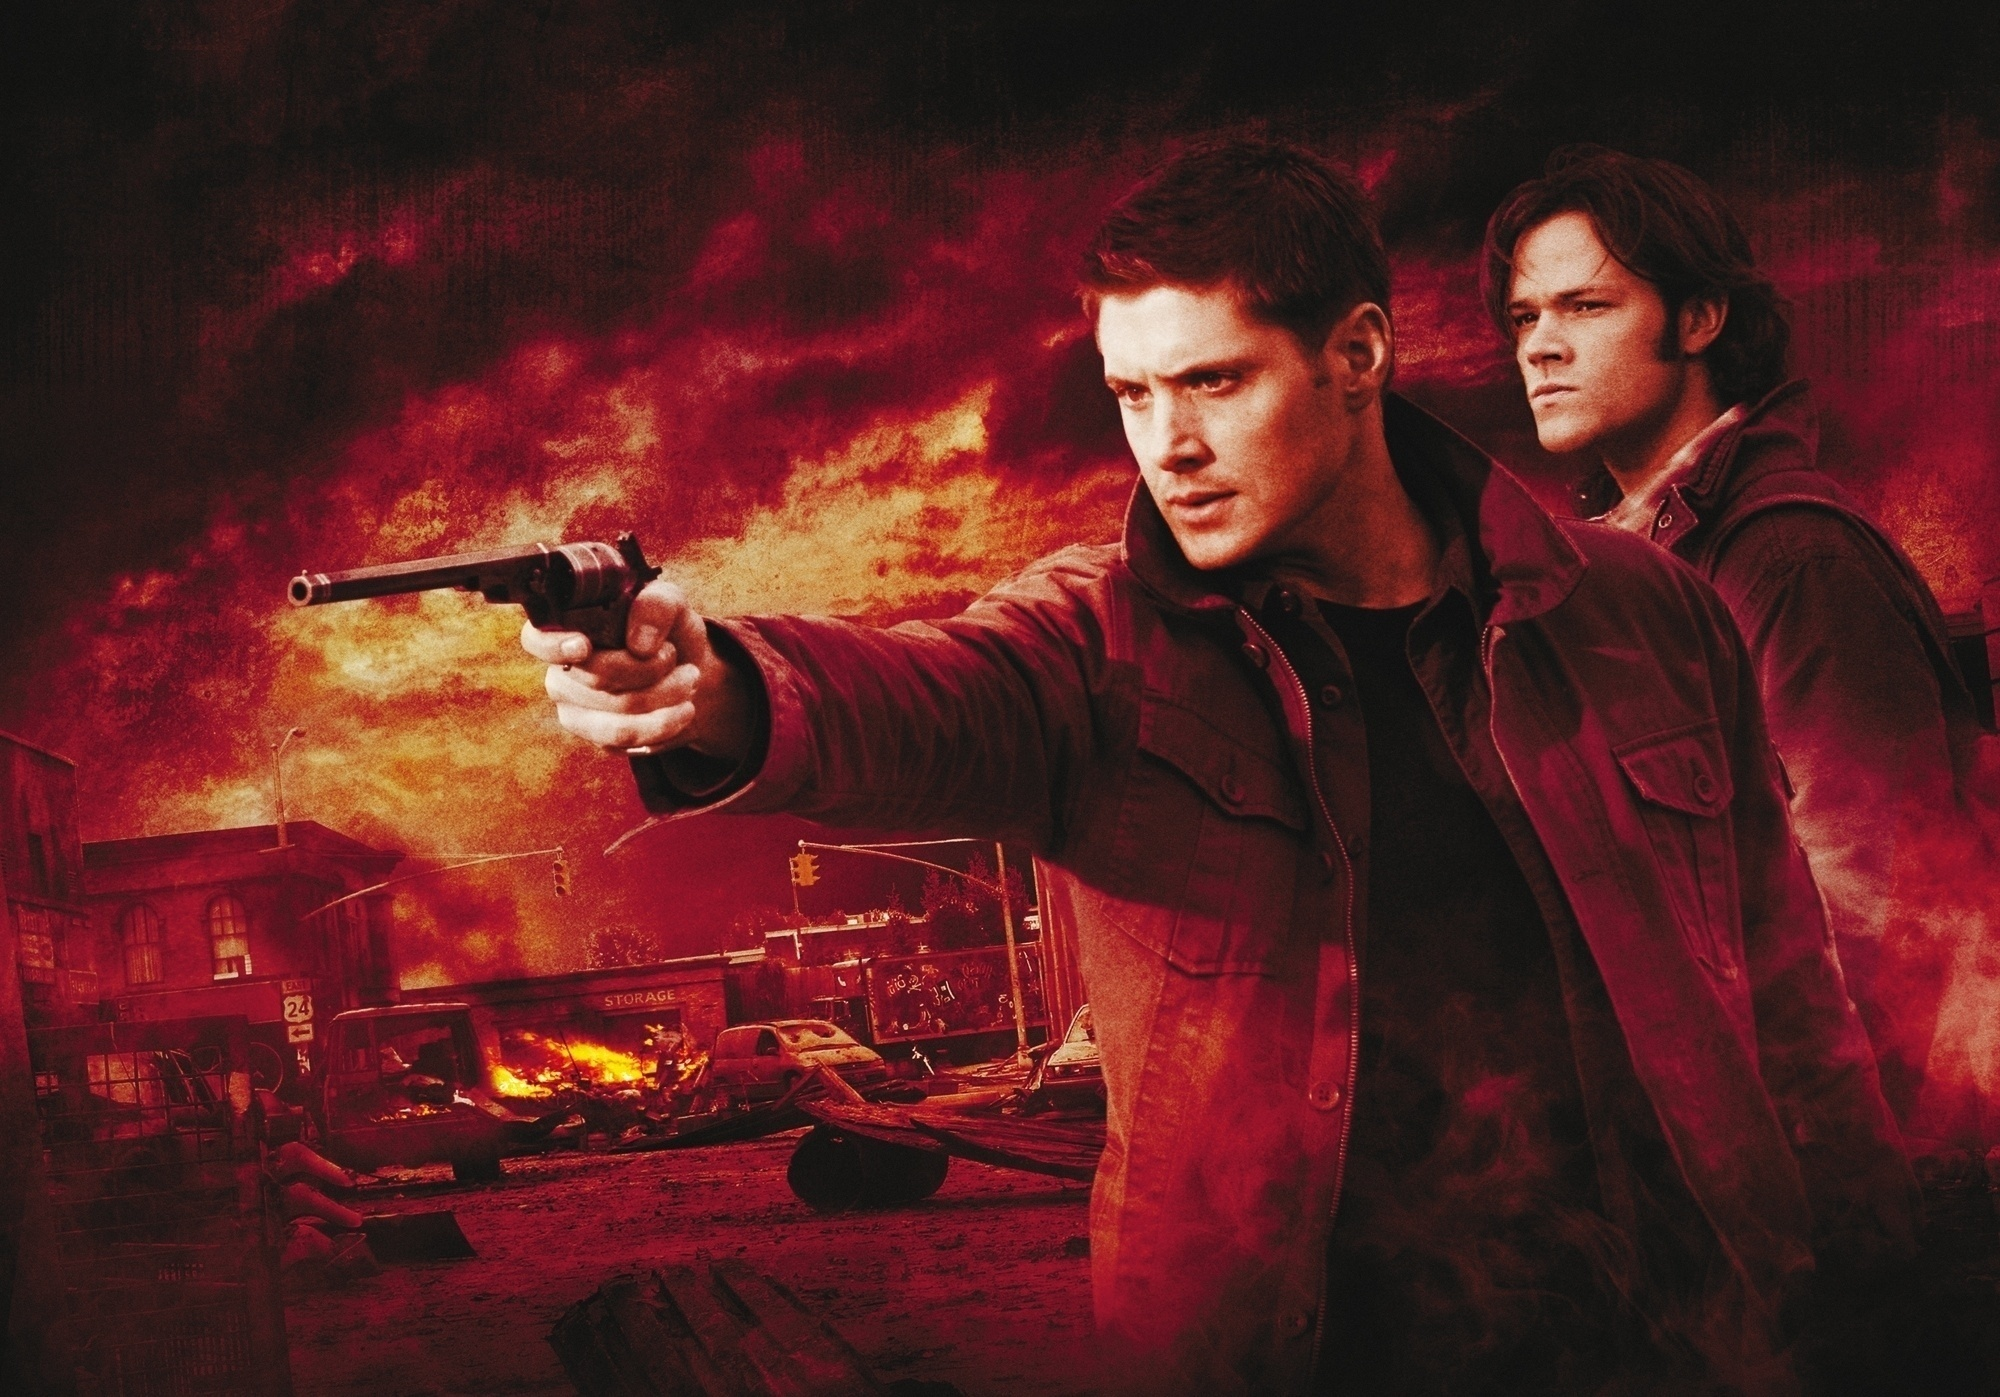 Wallpaper Movies Photo Picture The Series Supernatural